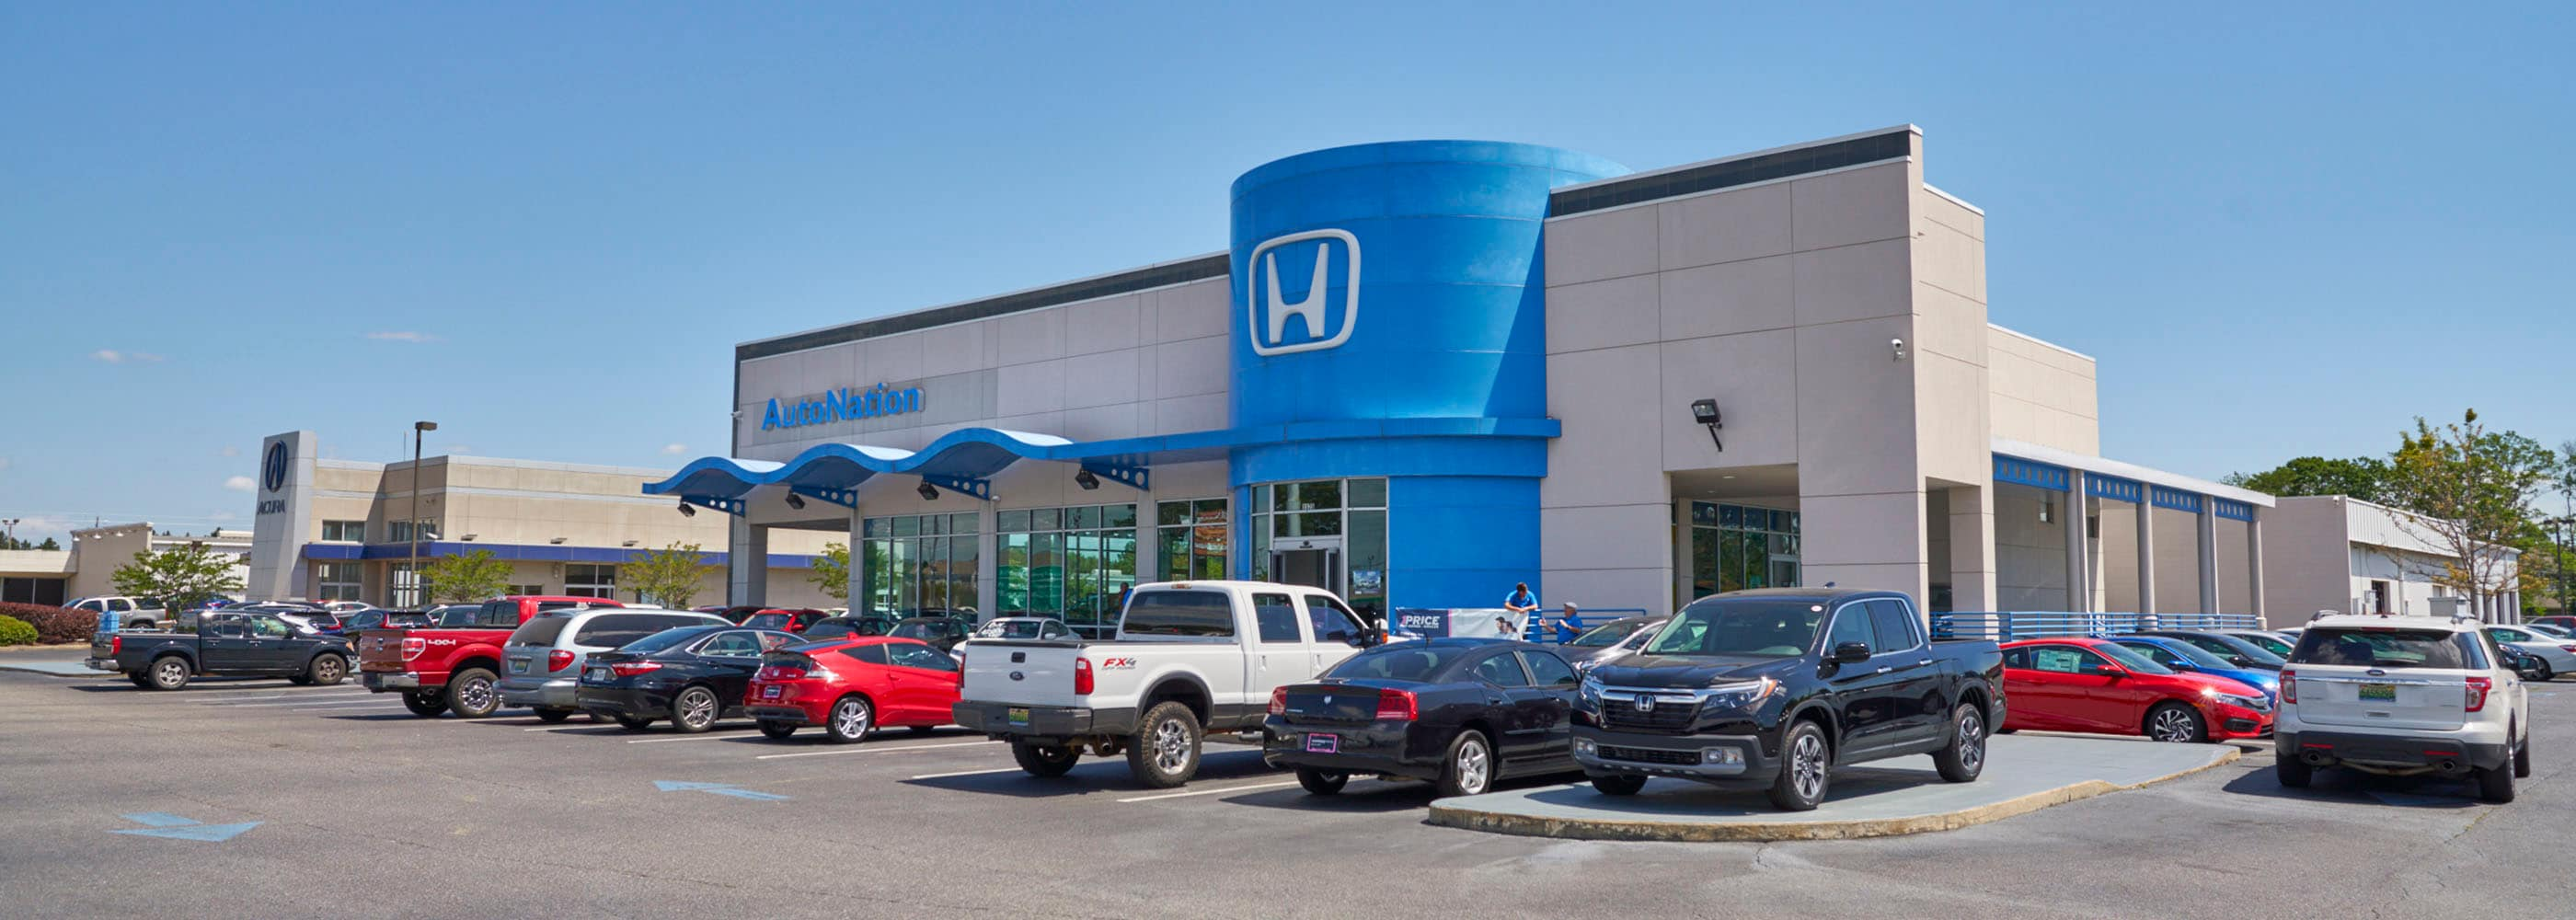 AutoNation Honda at Bel Air Mall